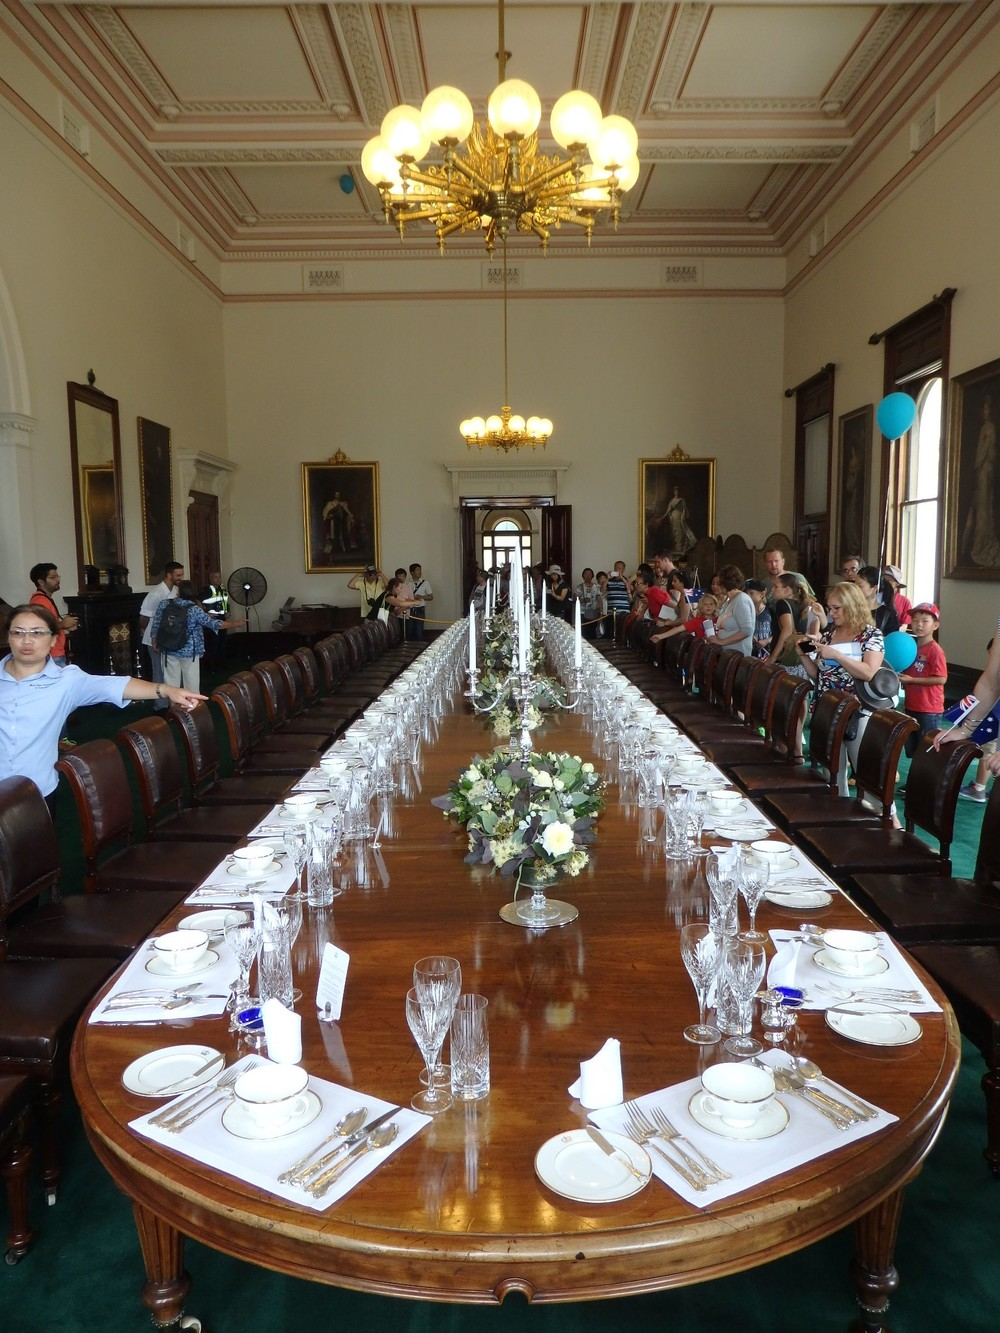 (Dining Hall, Government House)